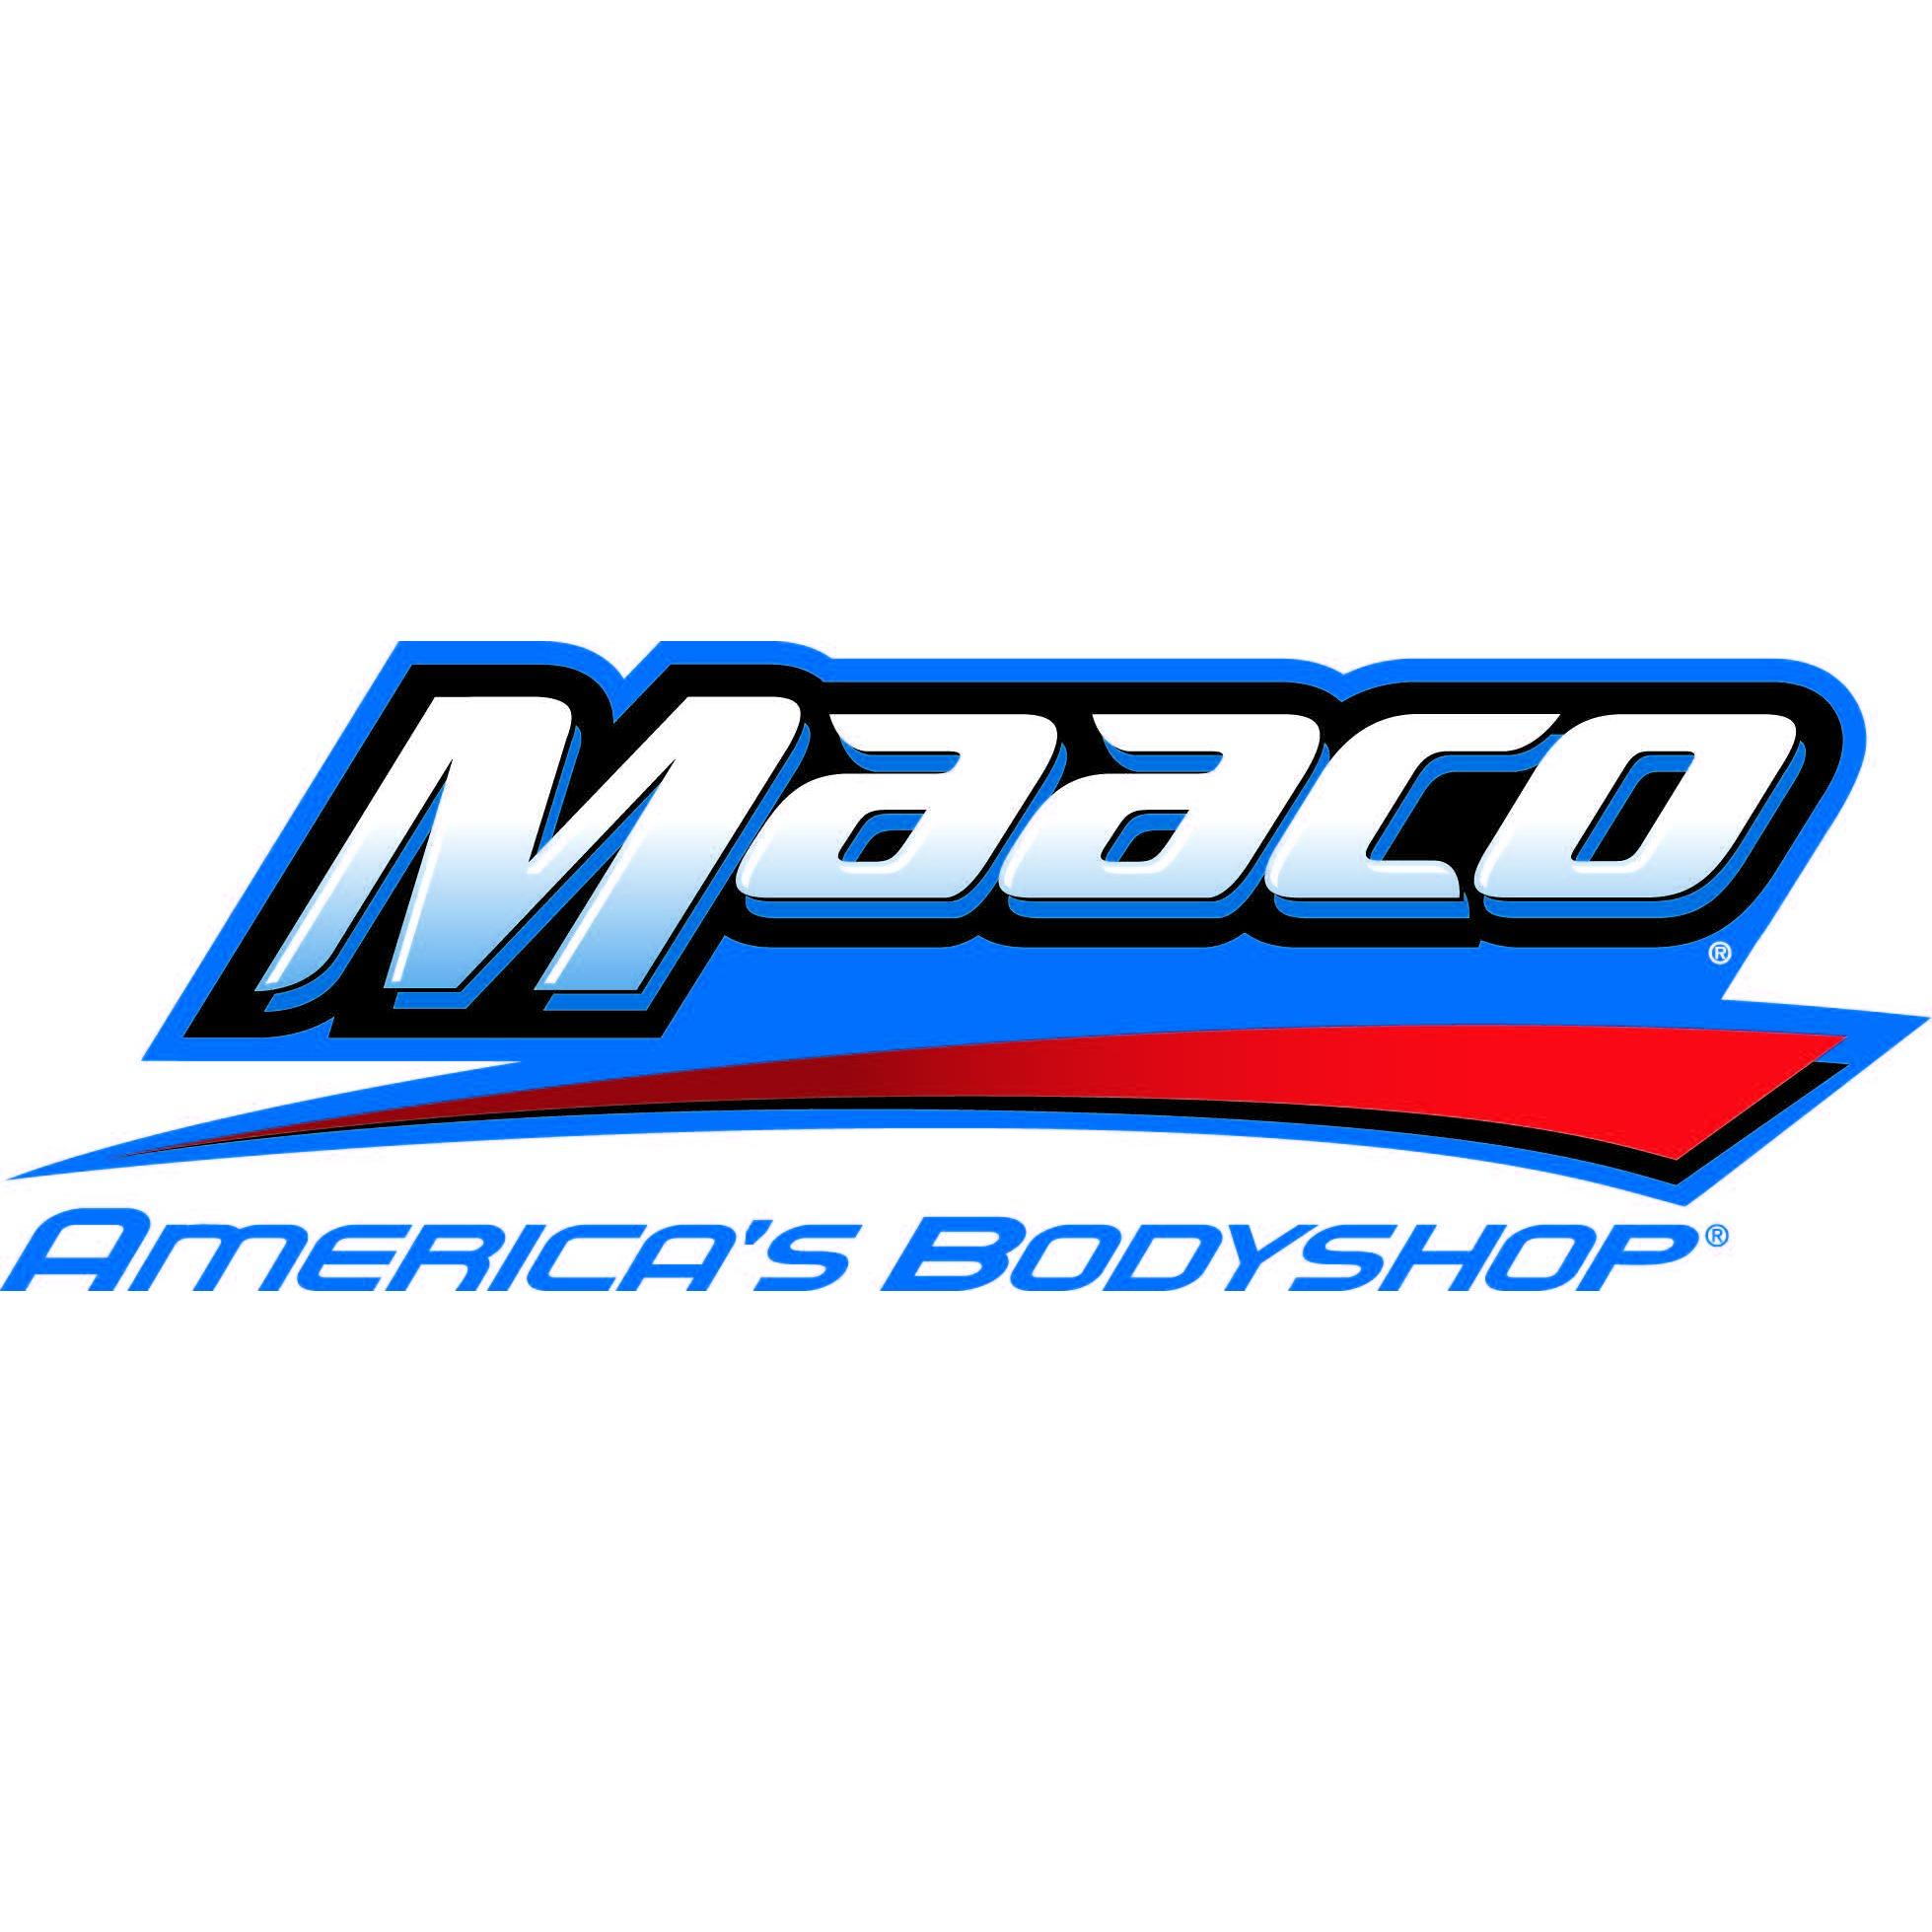 Maaco Collision Repair & Auto Painting - West Palm Beach, FL - Auto Body Repair & Painting